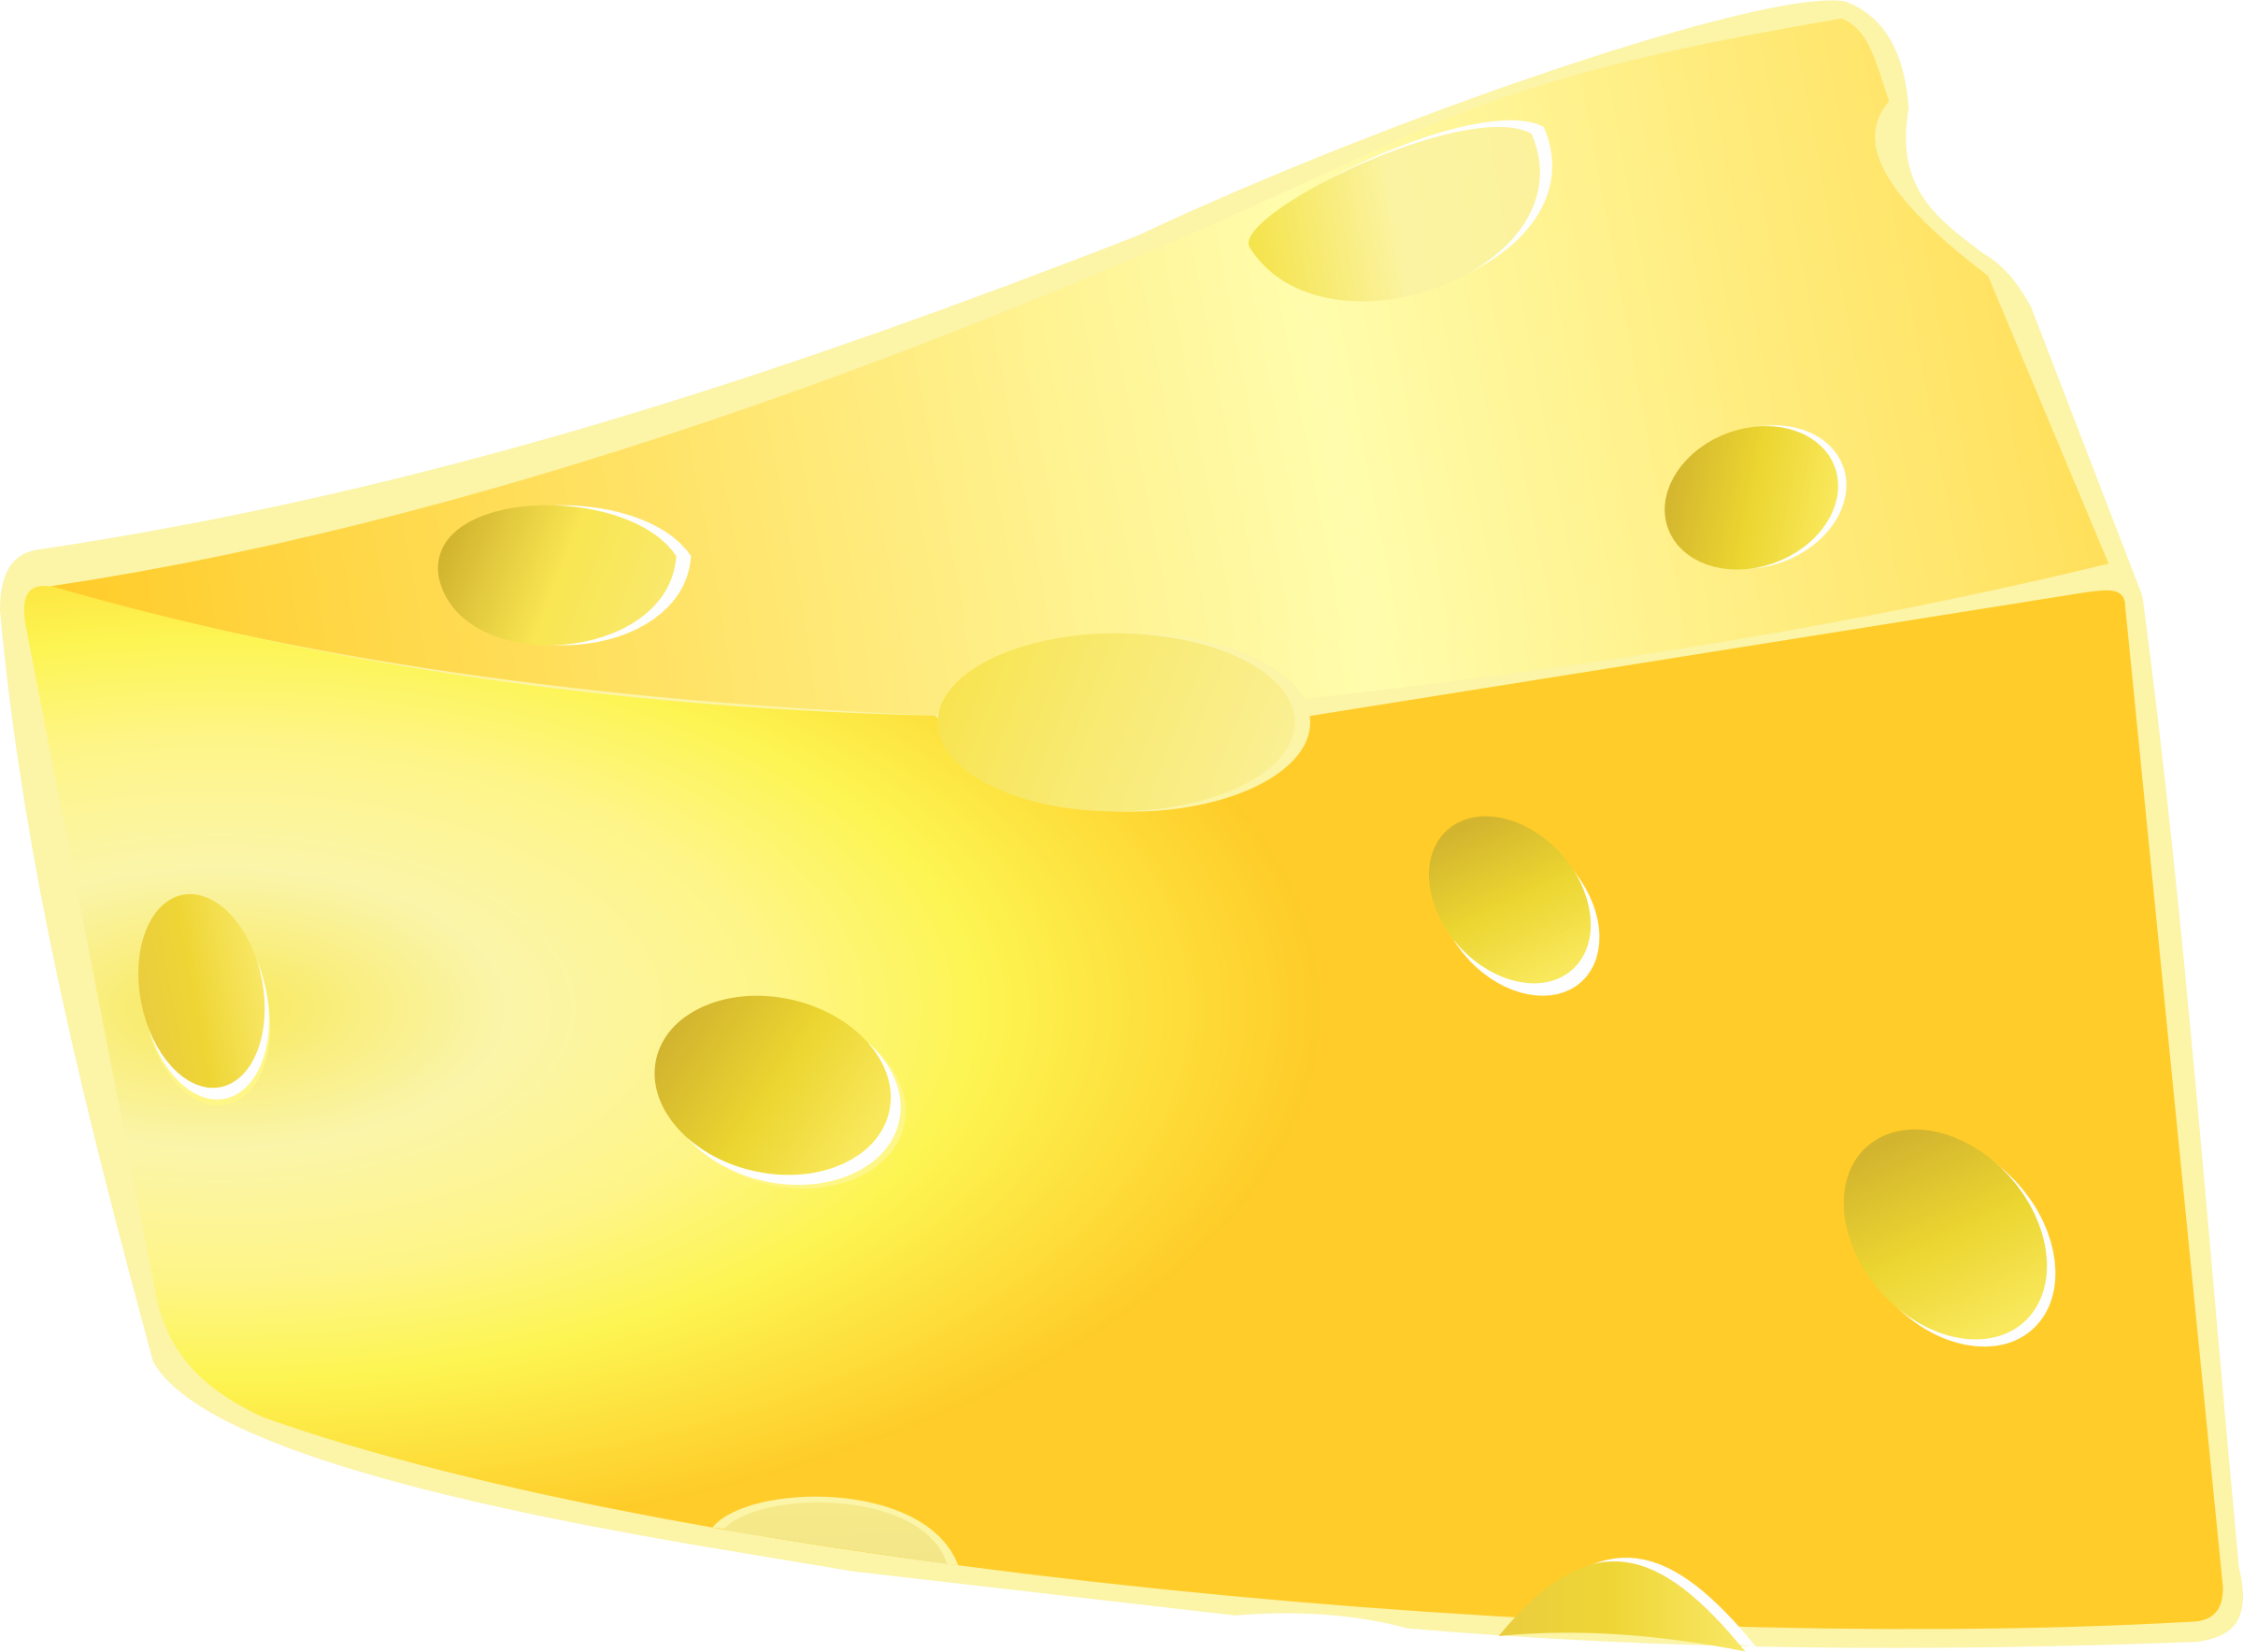 Swiss Cheese by GDJ